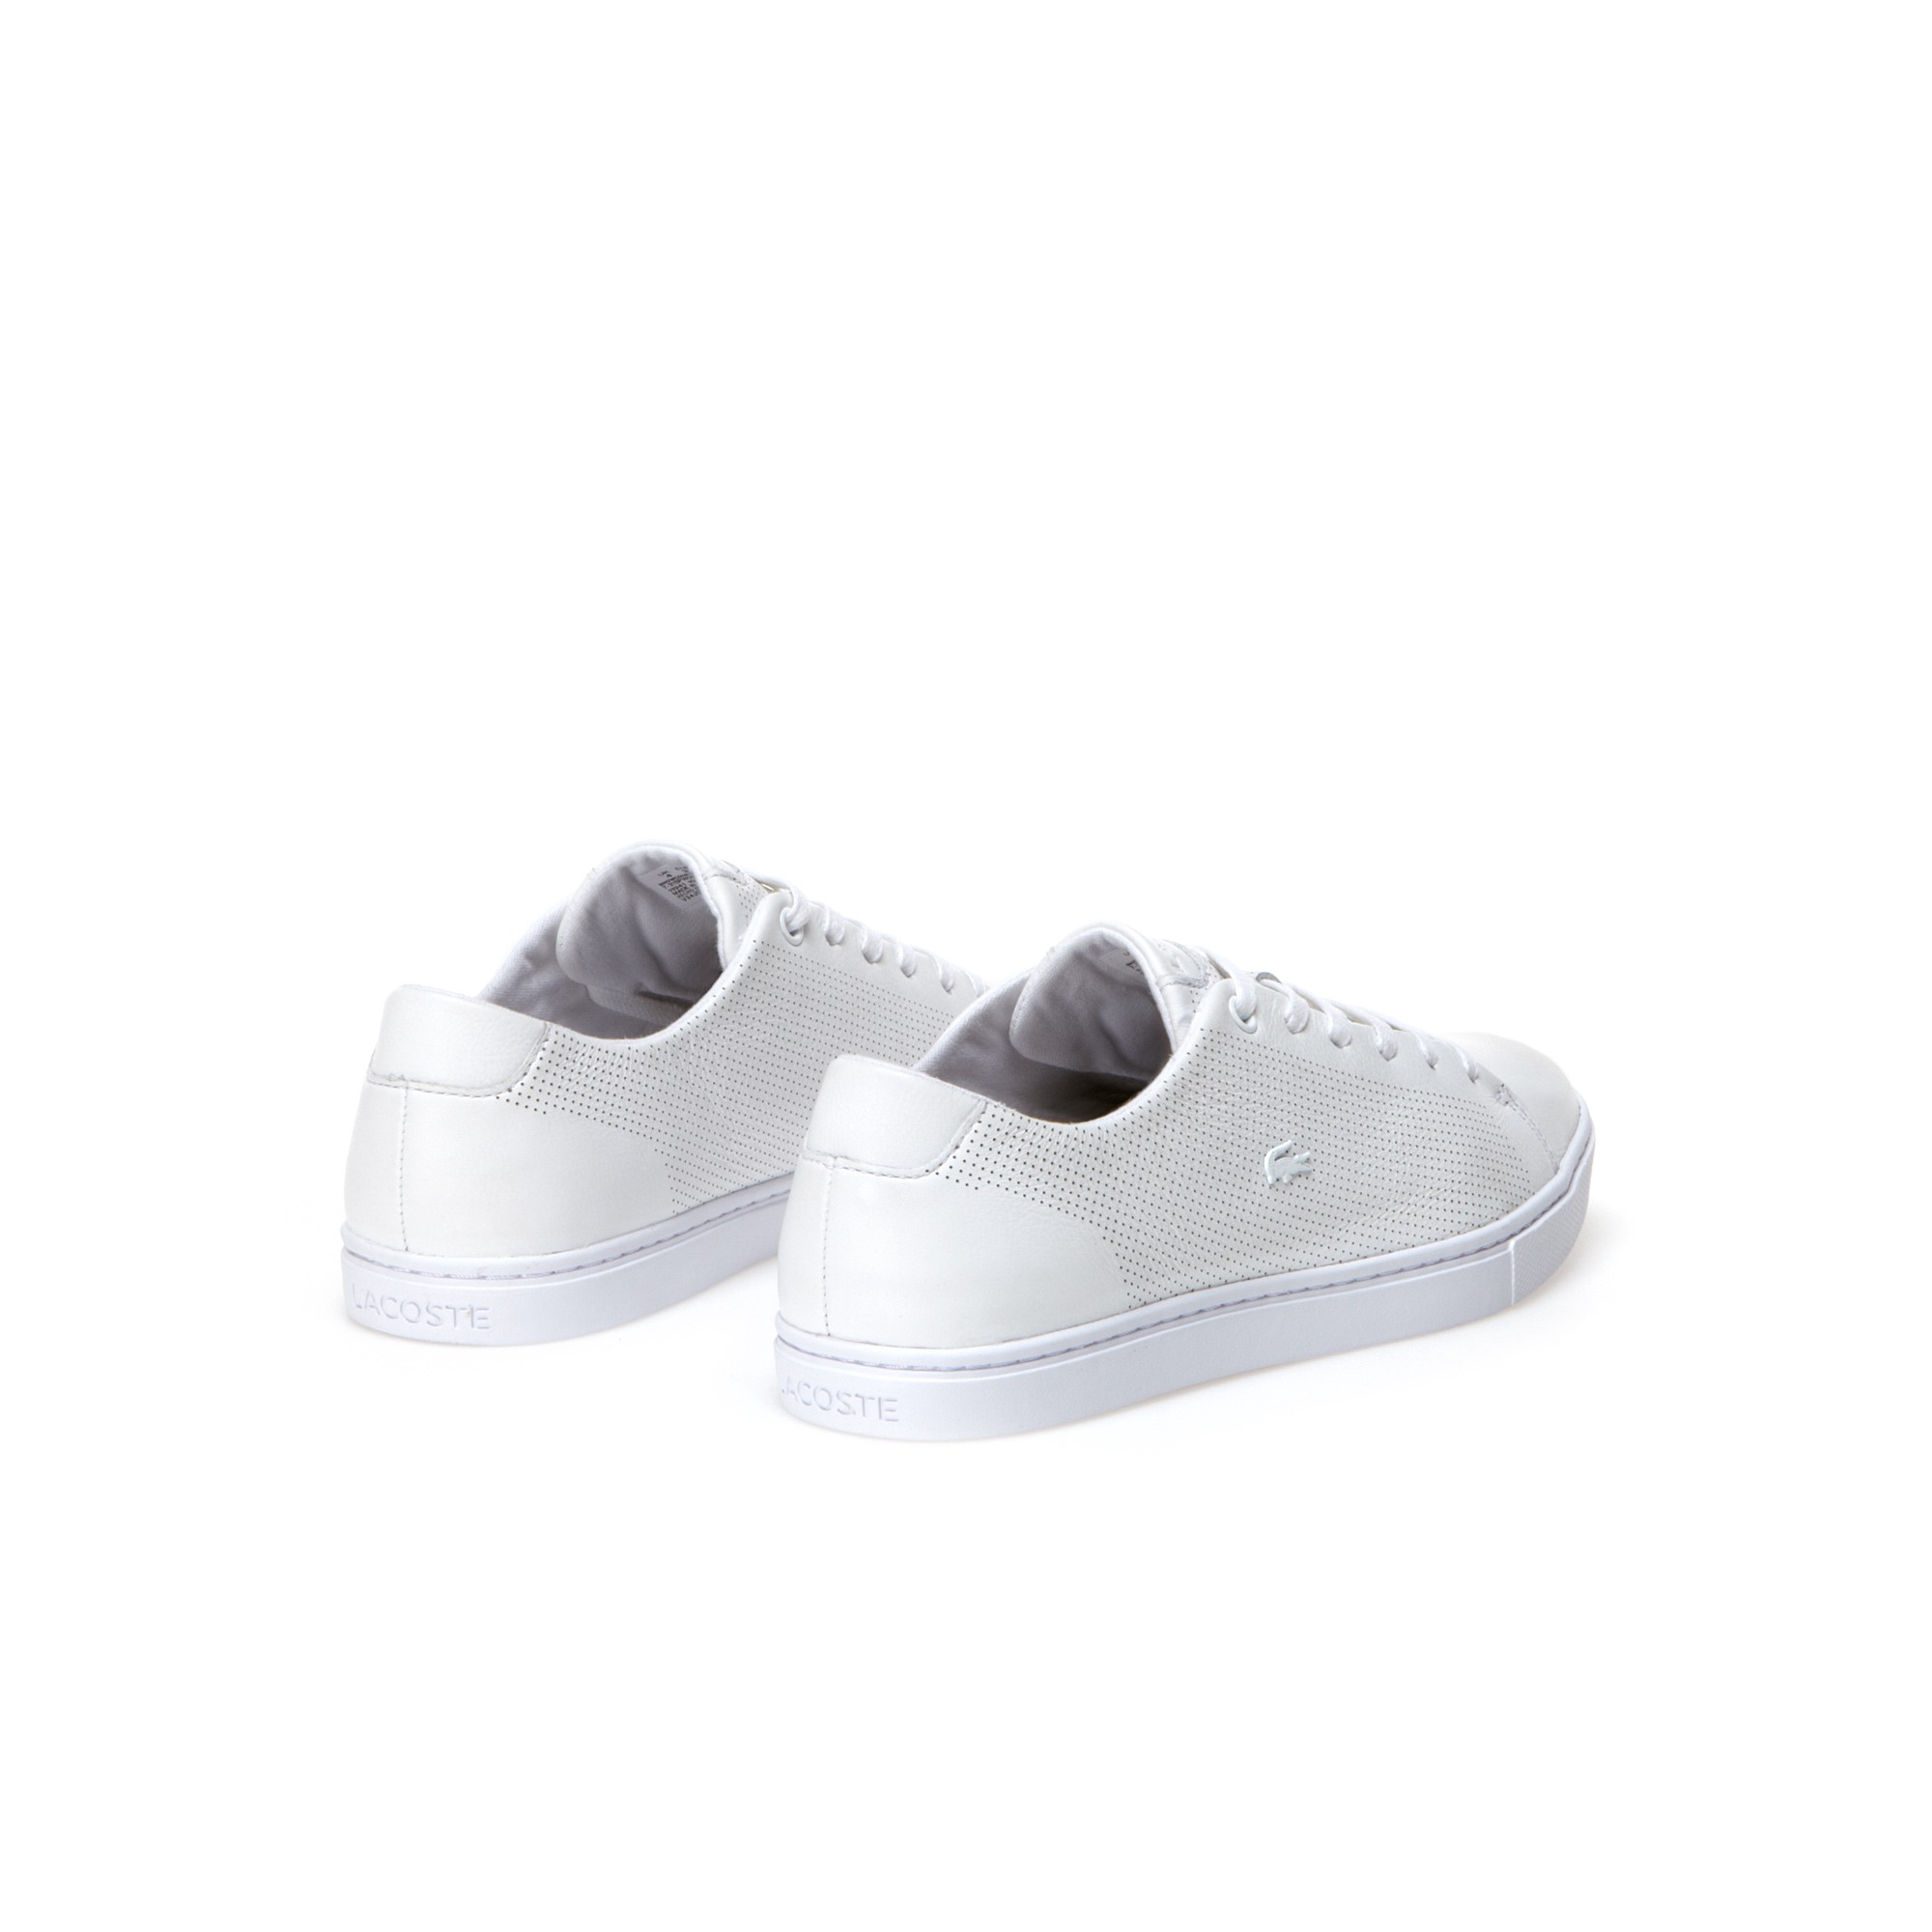 9e72b4ae3cc35 Lacoste Women s Showcourt Leather Sneakers - Natural 7.5